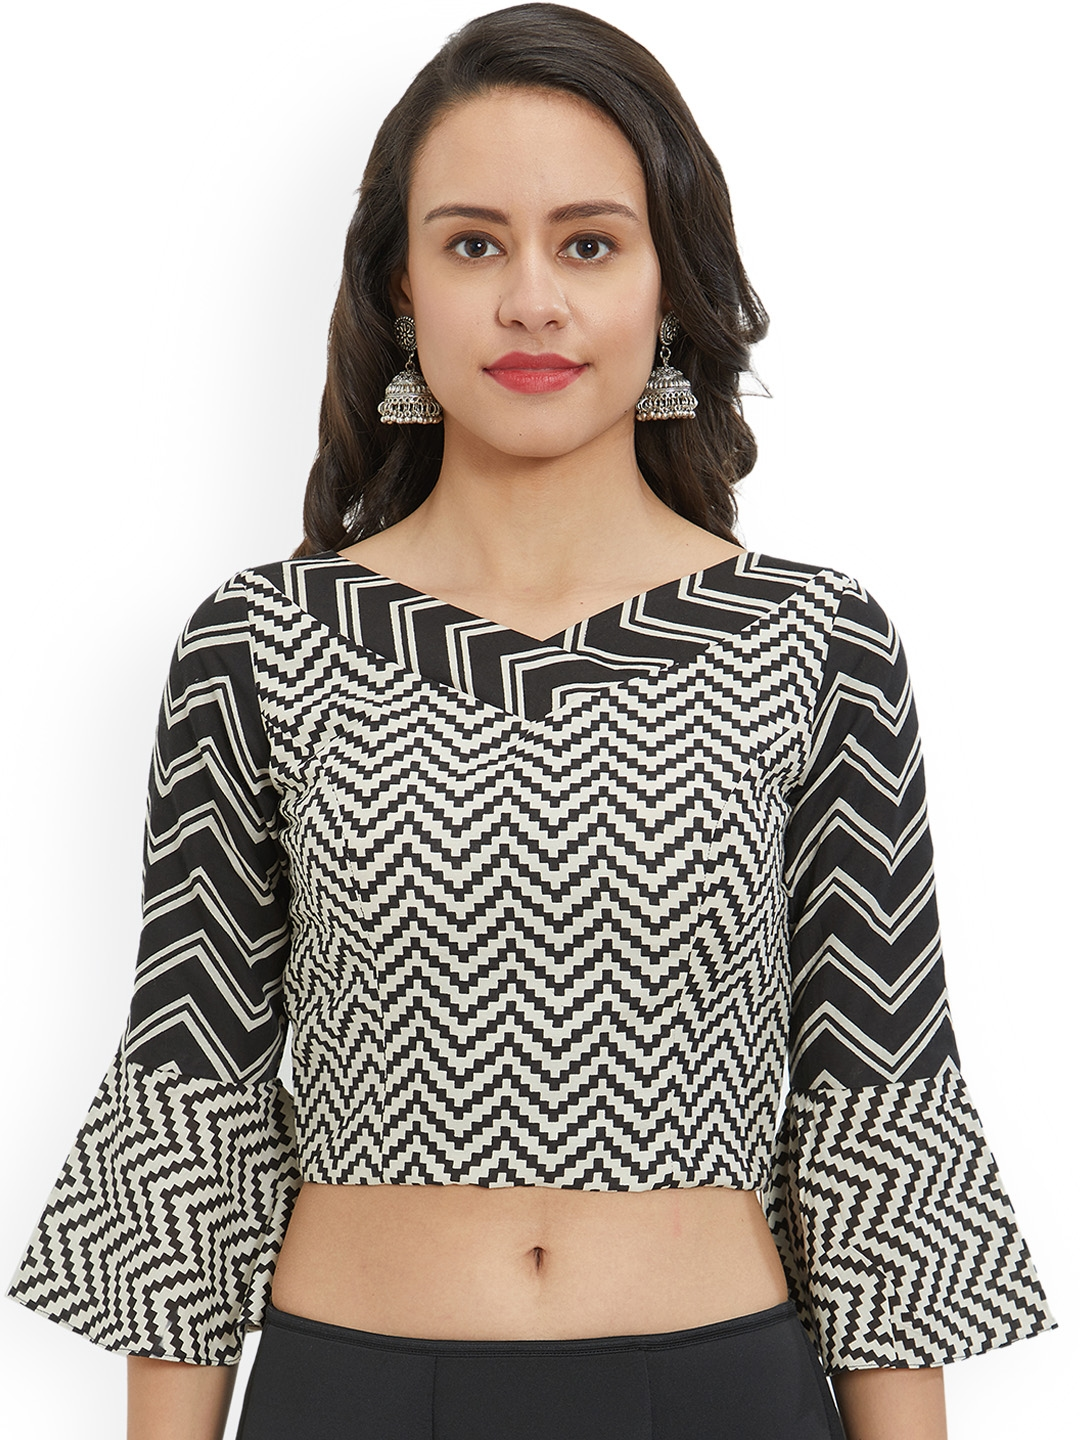 514d0a450deca7 Buy Just B Women Black & White Printed Blouse - Saree Blouse for ...